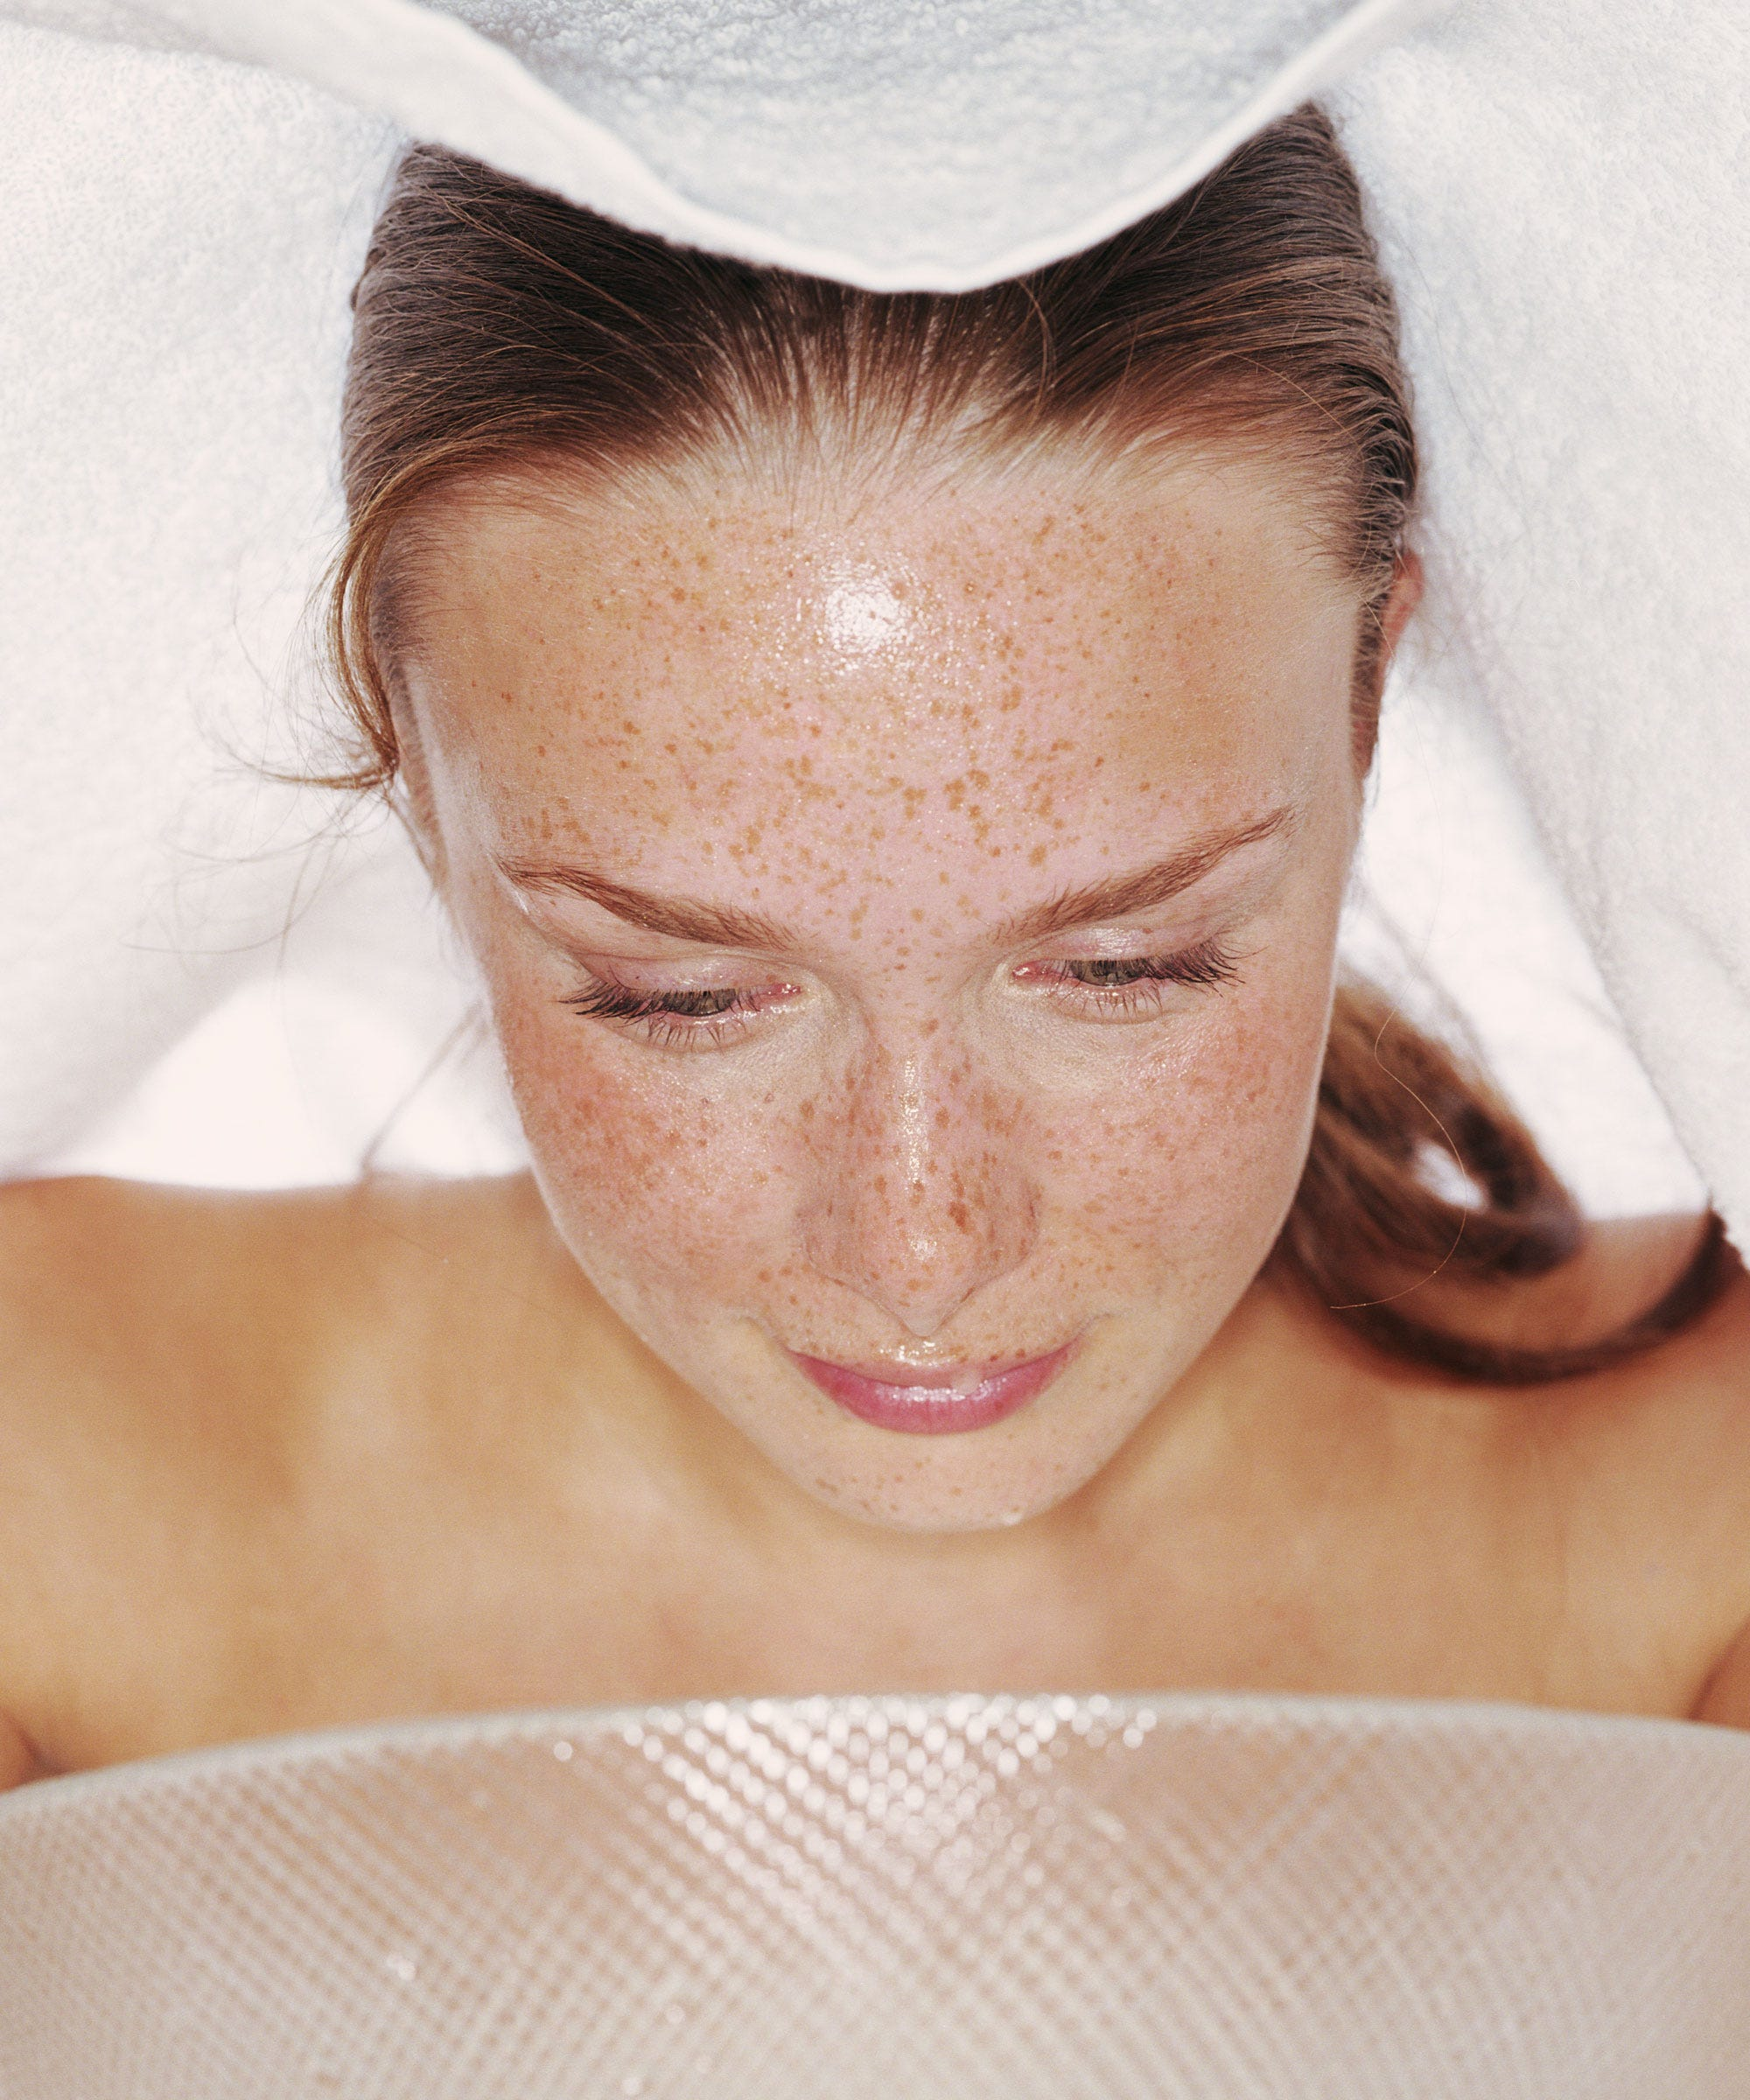 pics How to Exfoliate, Steam and Use Face Masks